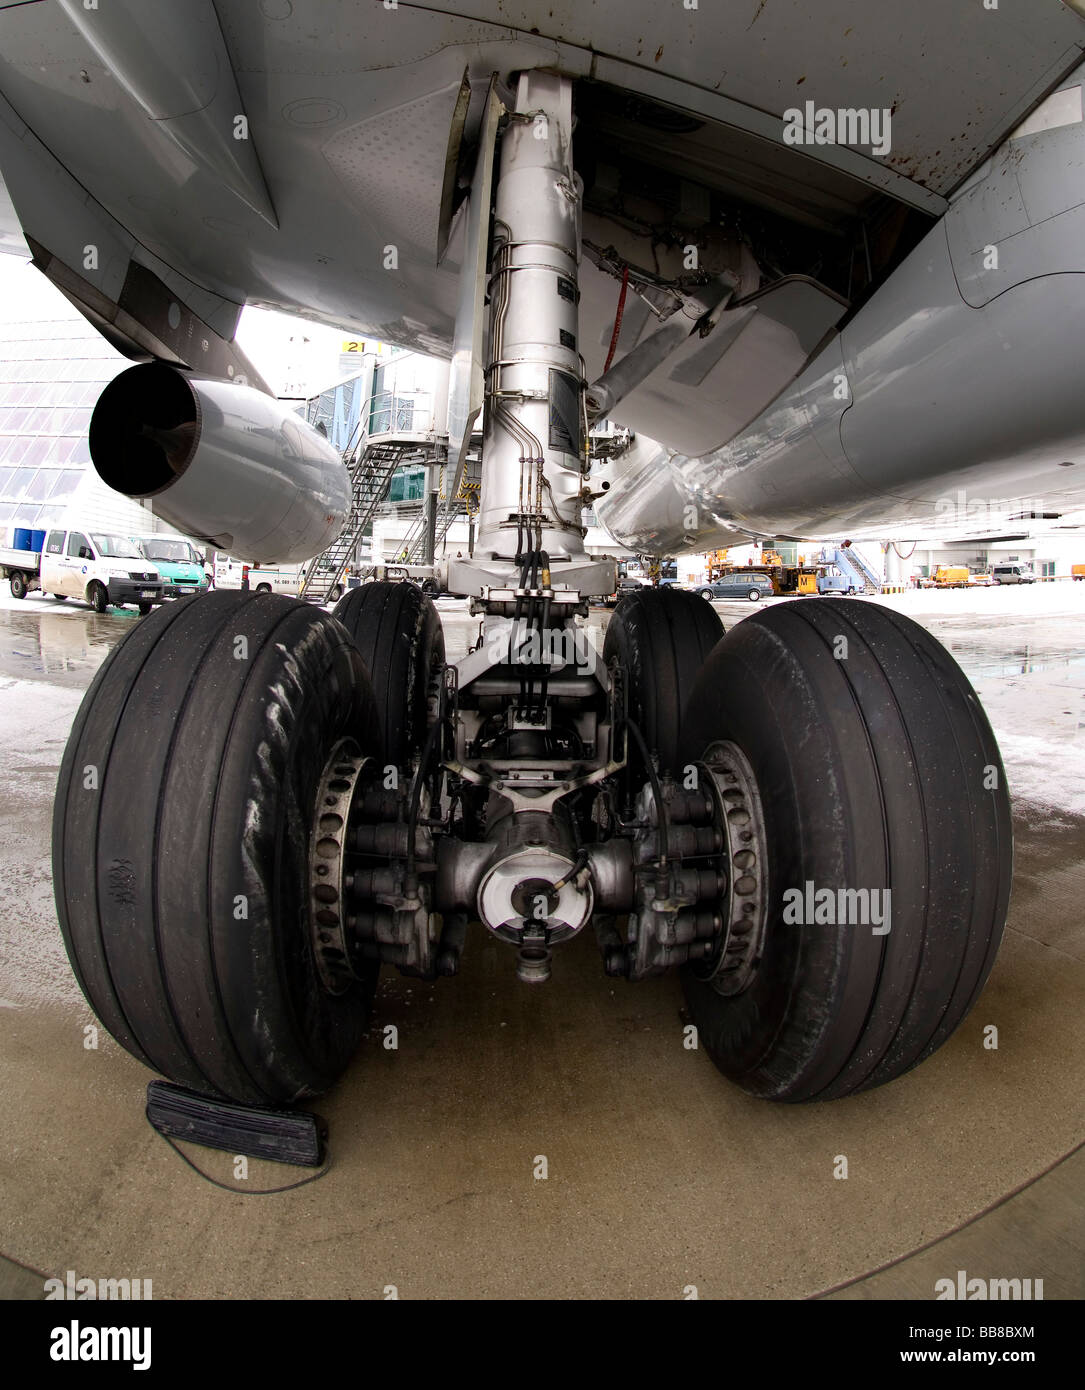 Undercarriage of an airplane - Stock Image